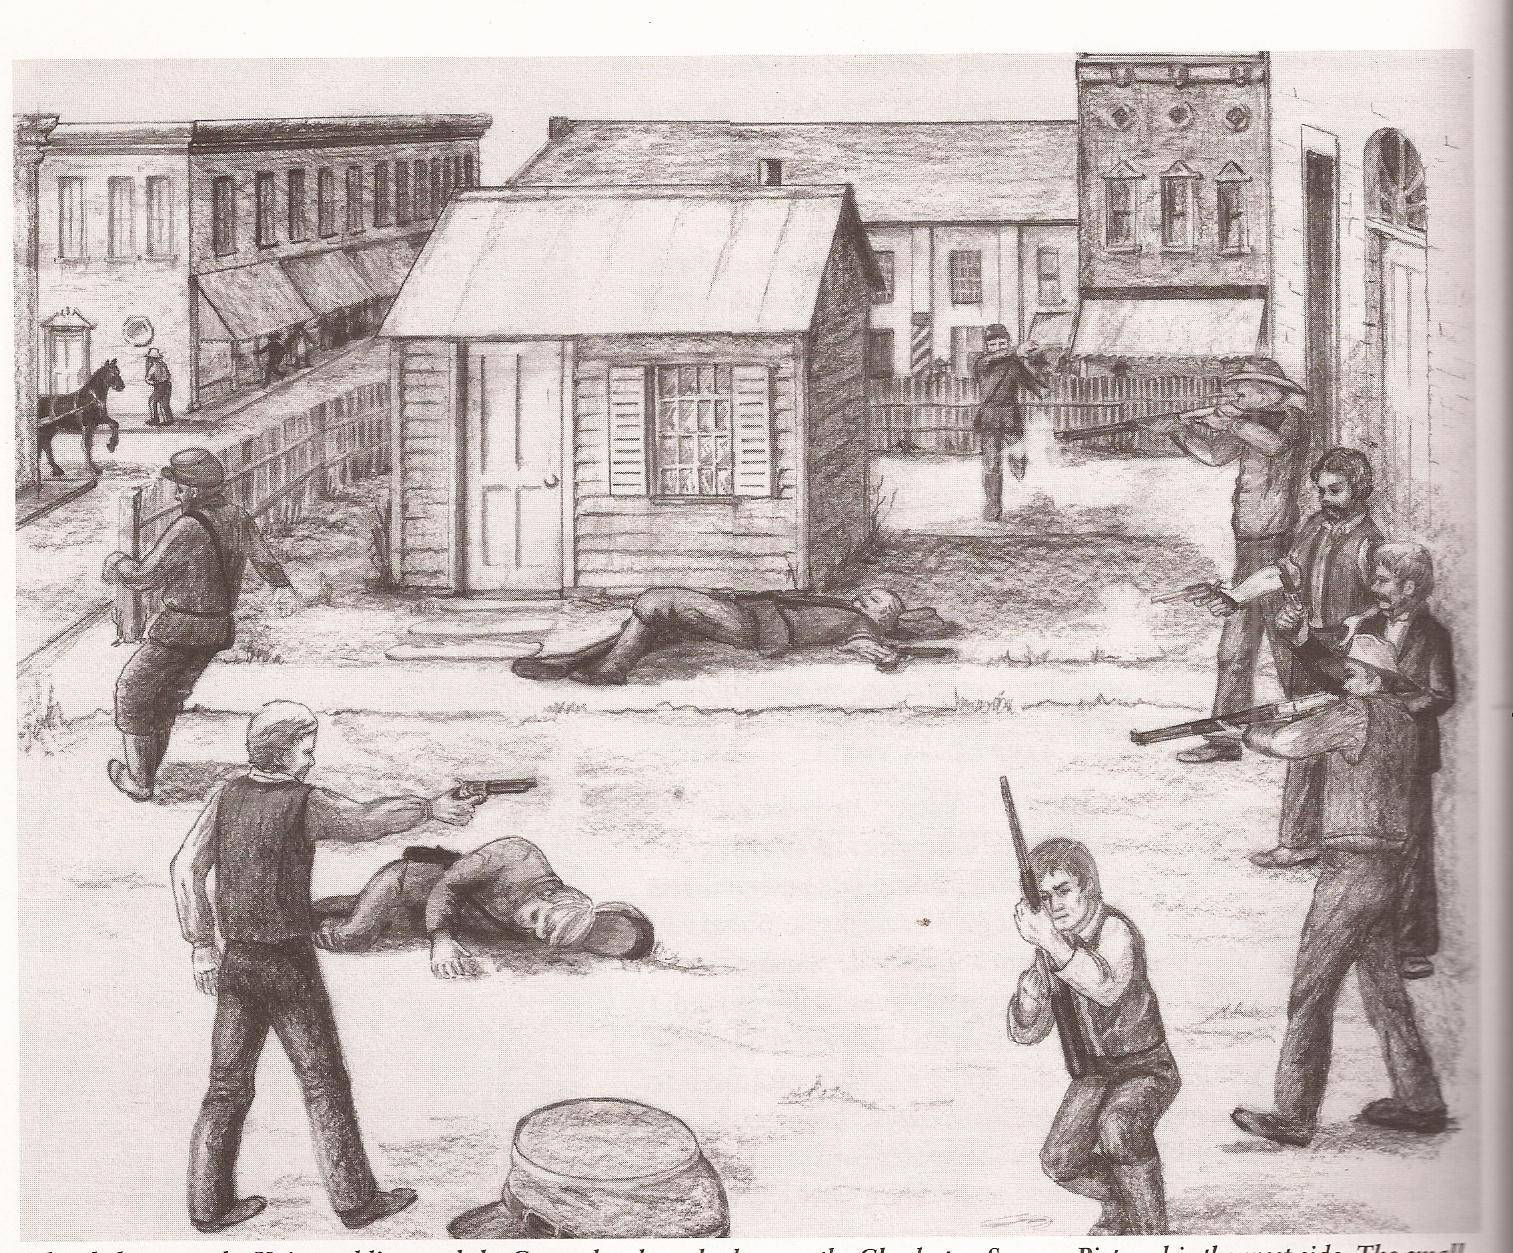 A drawing captures the bloody 1864 clash in eastern Illinois that became known as the Charleston Riot.